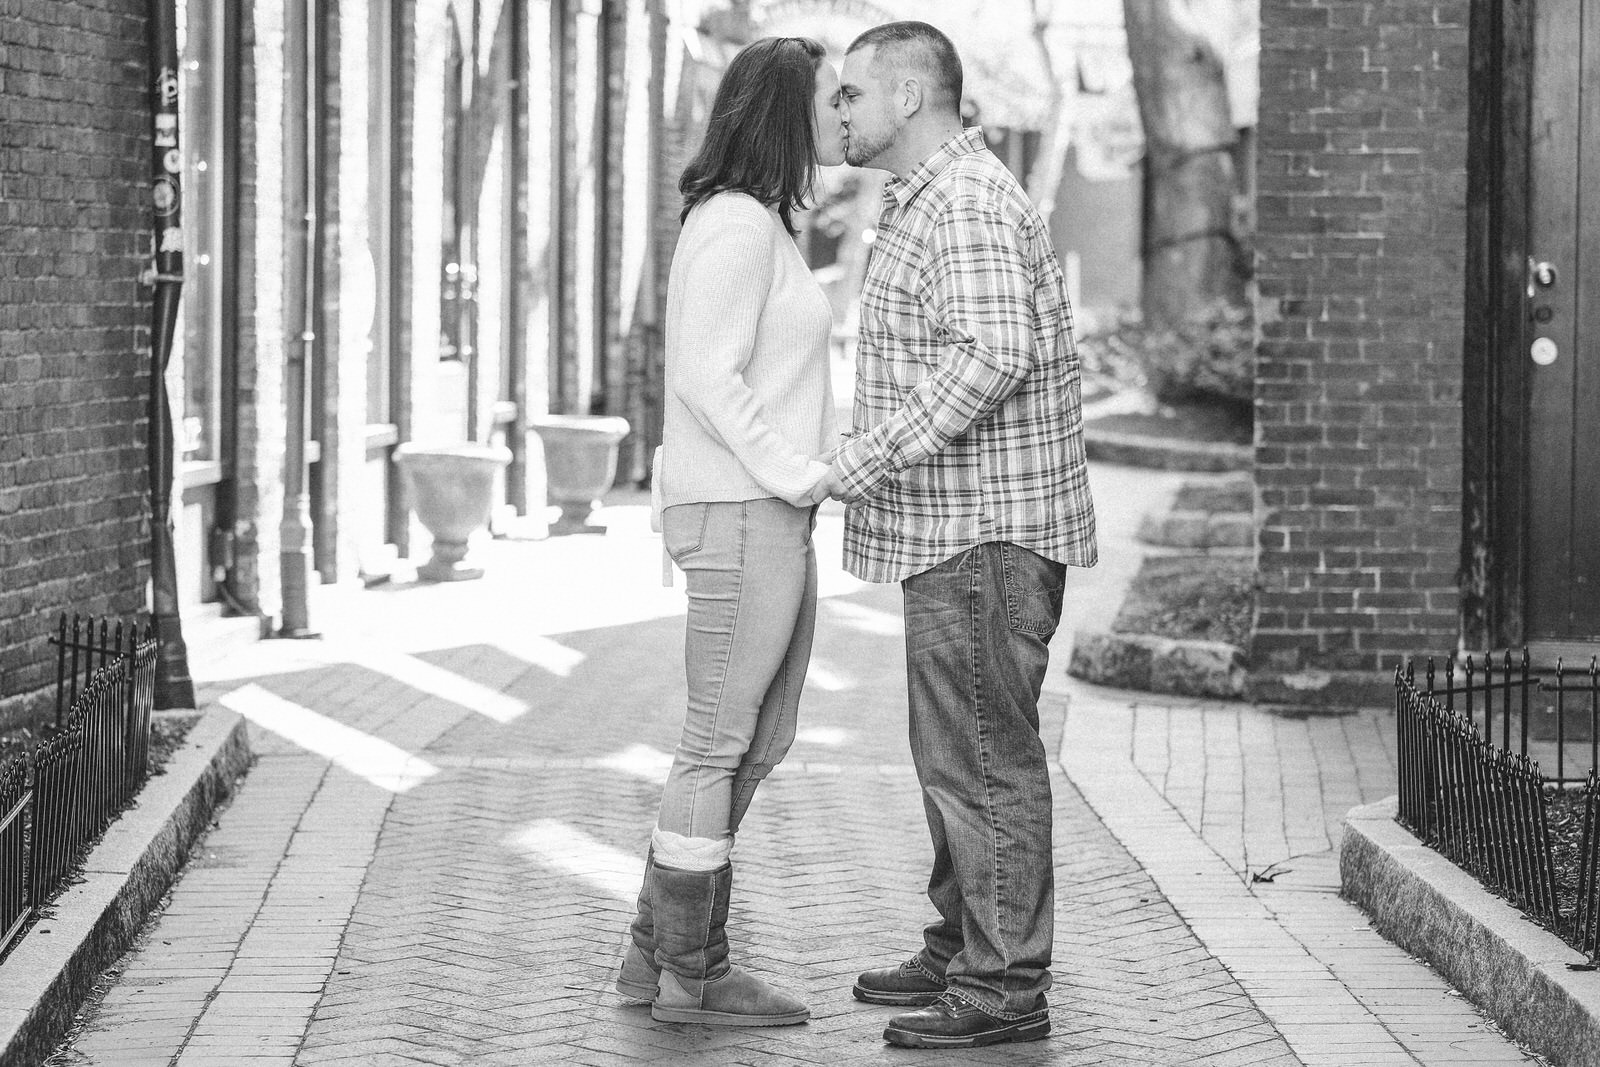 candid-portsmouth-nh-engagement-photography-16.jpg